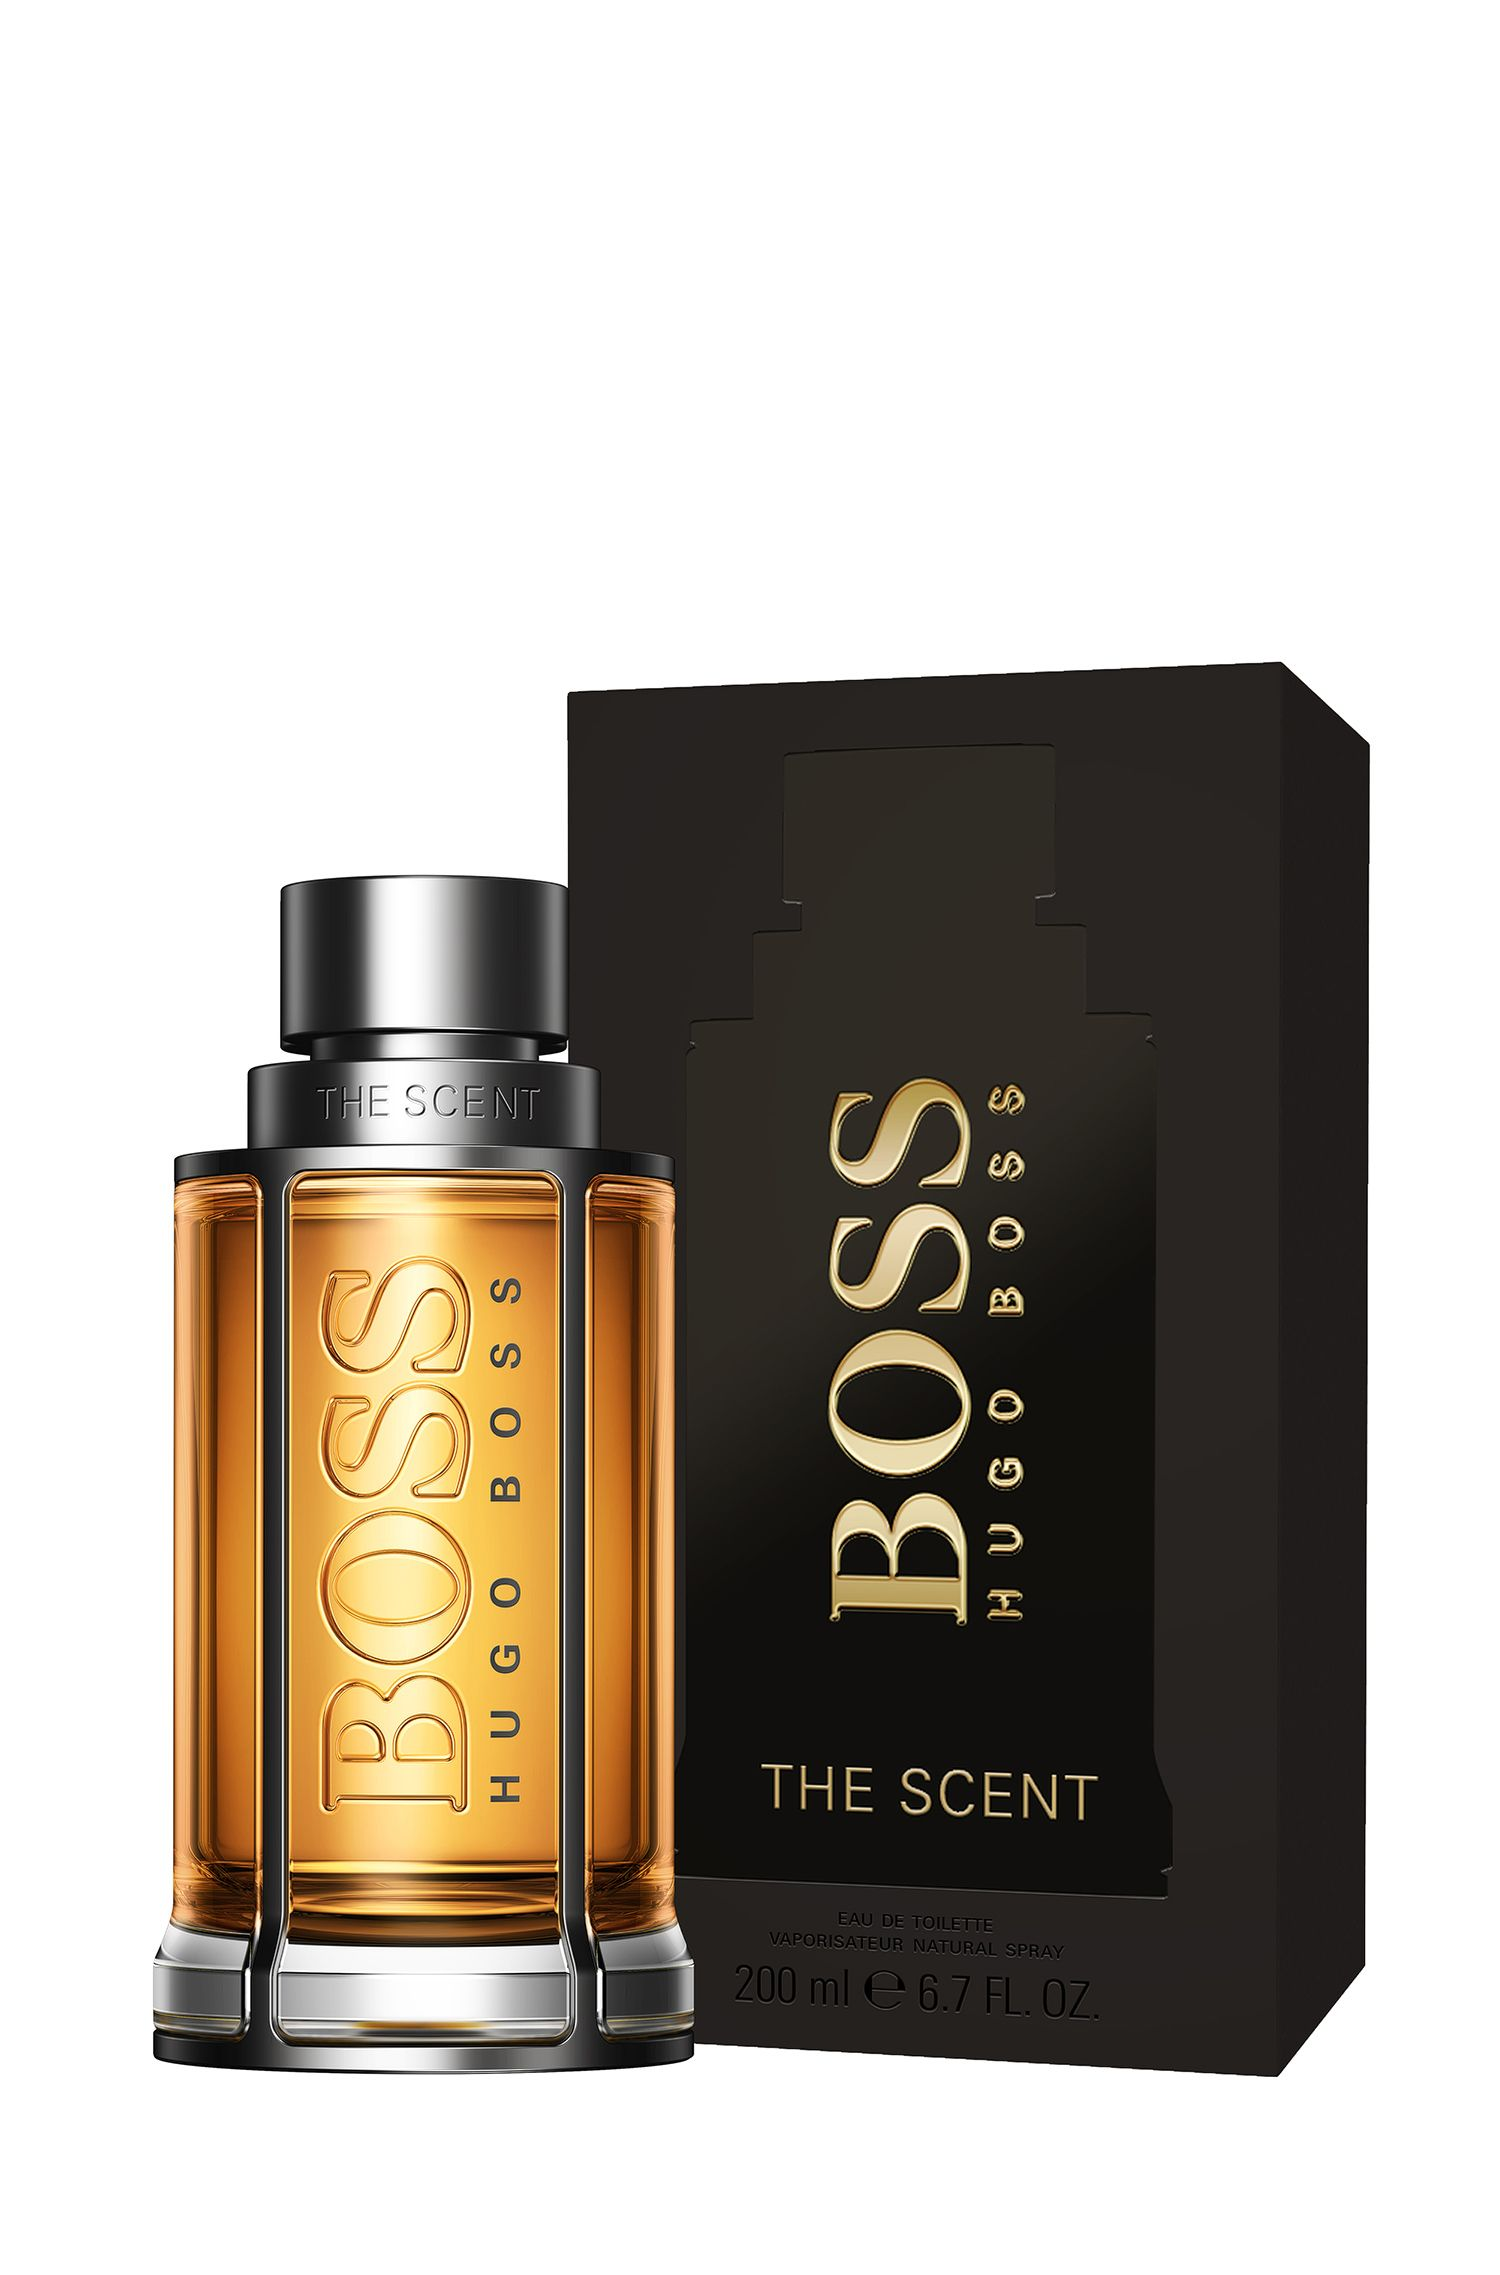 BOSS The Scent Eau de Toilette 200 ml, Assorted-Pre-Pack